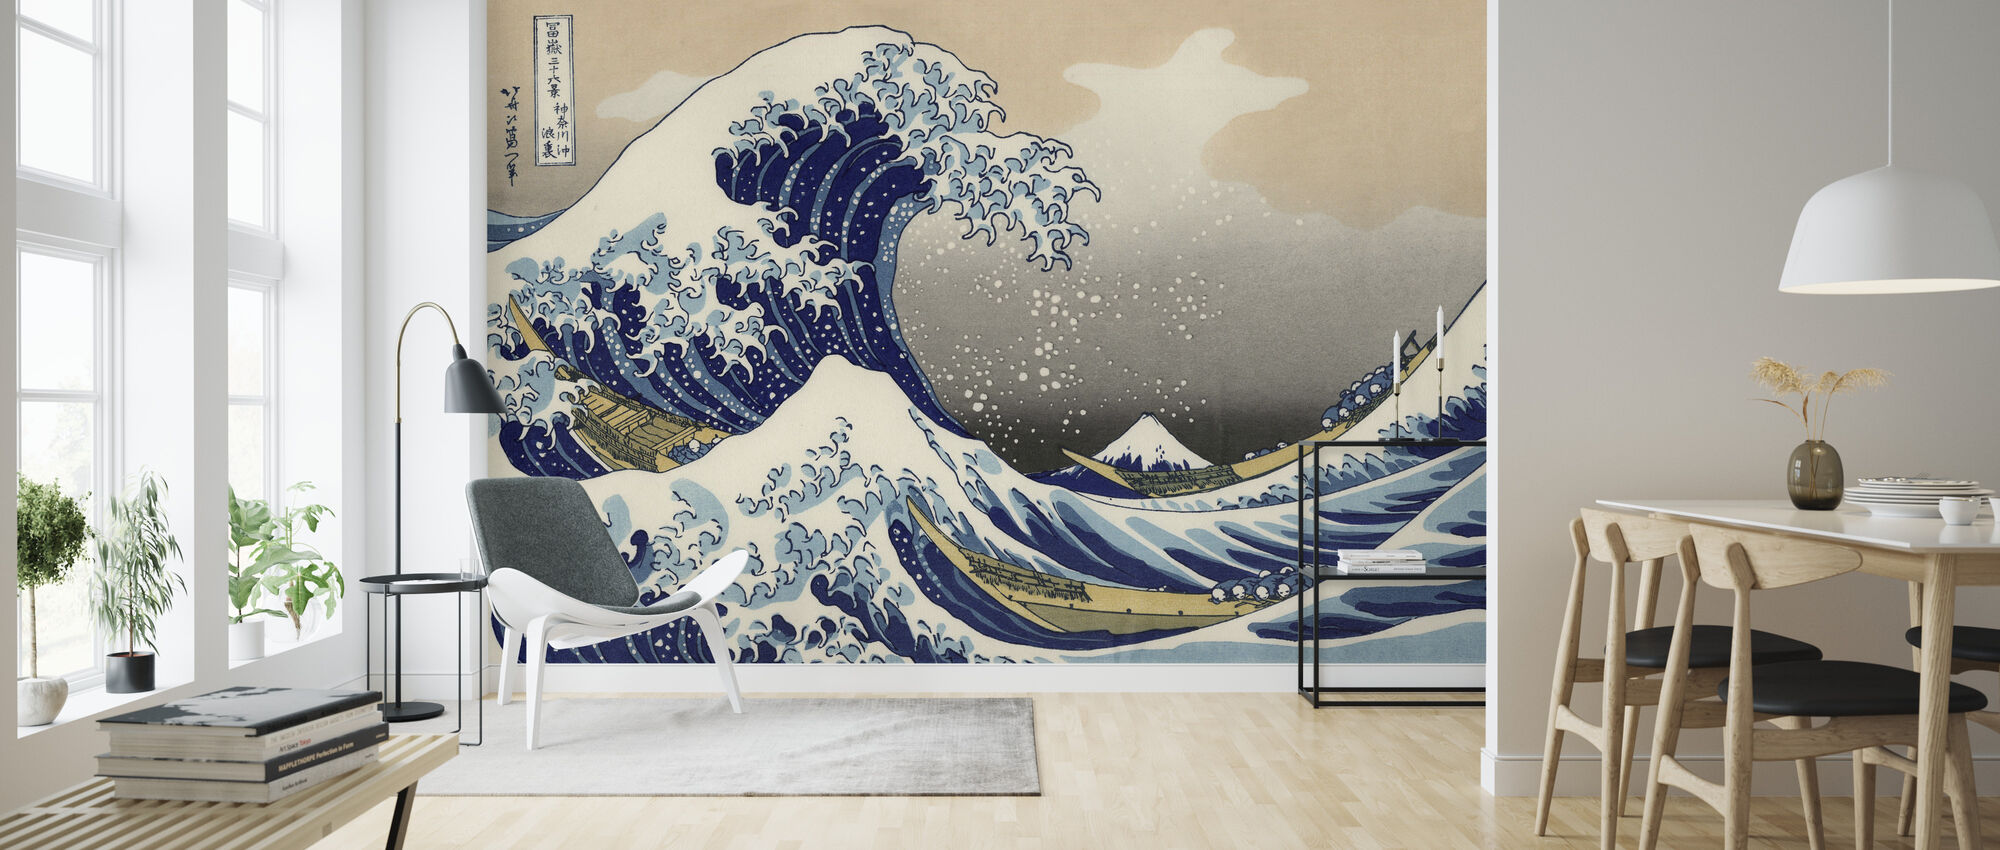 Great Wave, Katsushika Hokusai - Wallpaper - Living Room